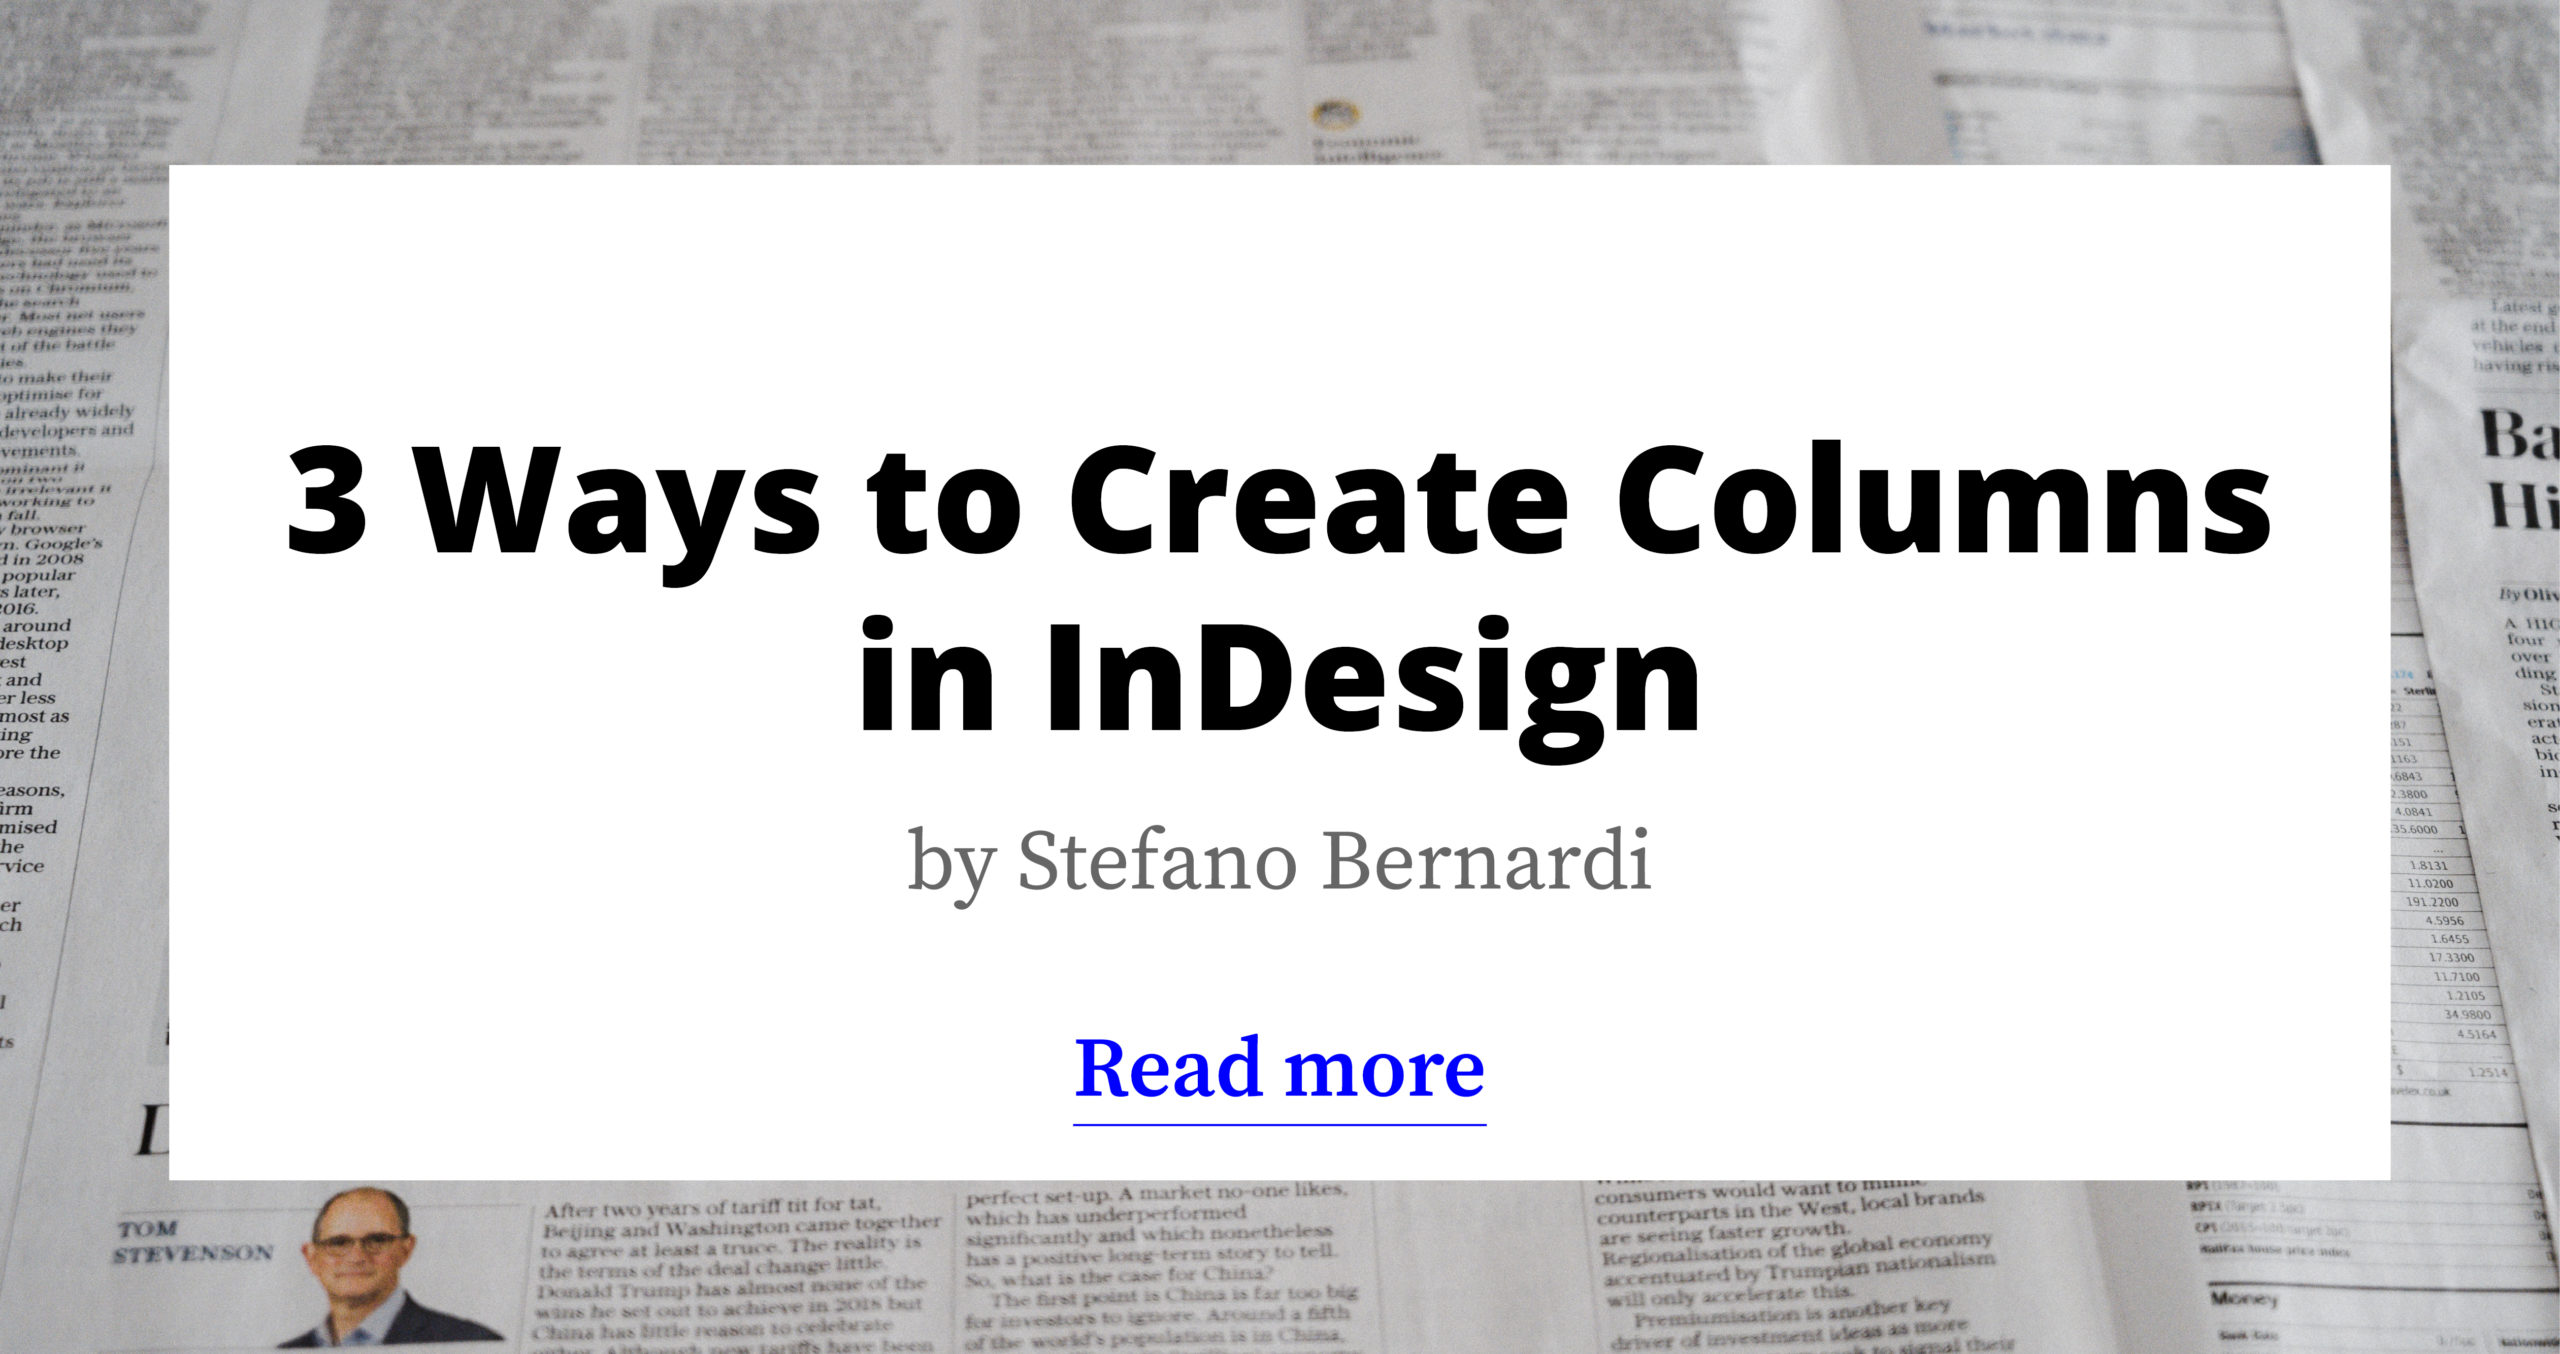 The 3 Ways to Create Columns in InDesign